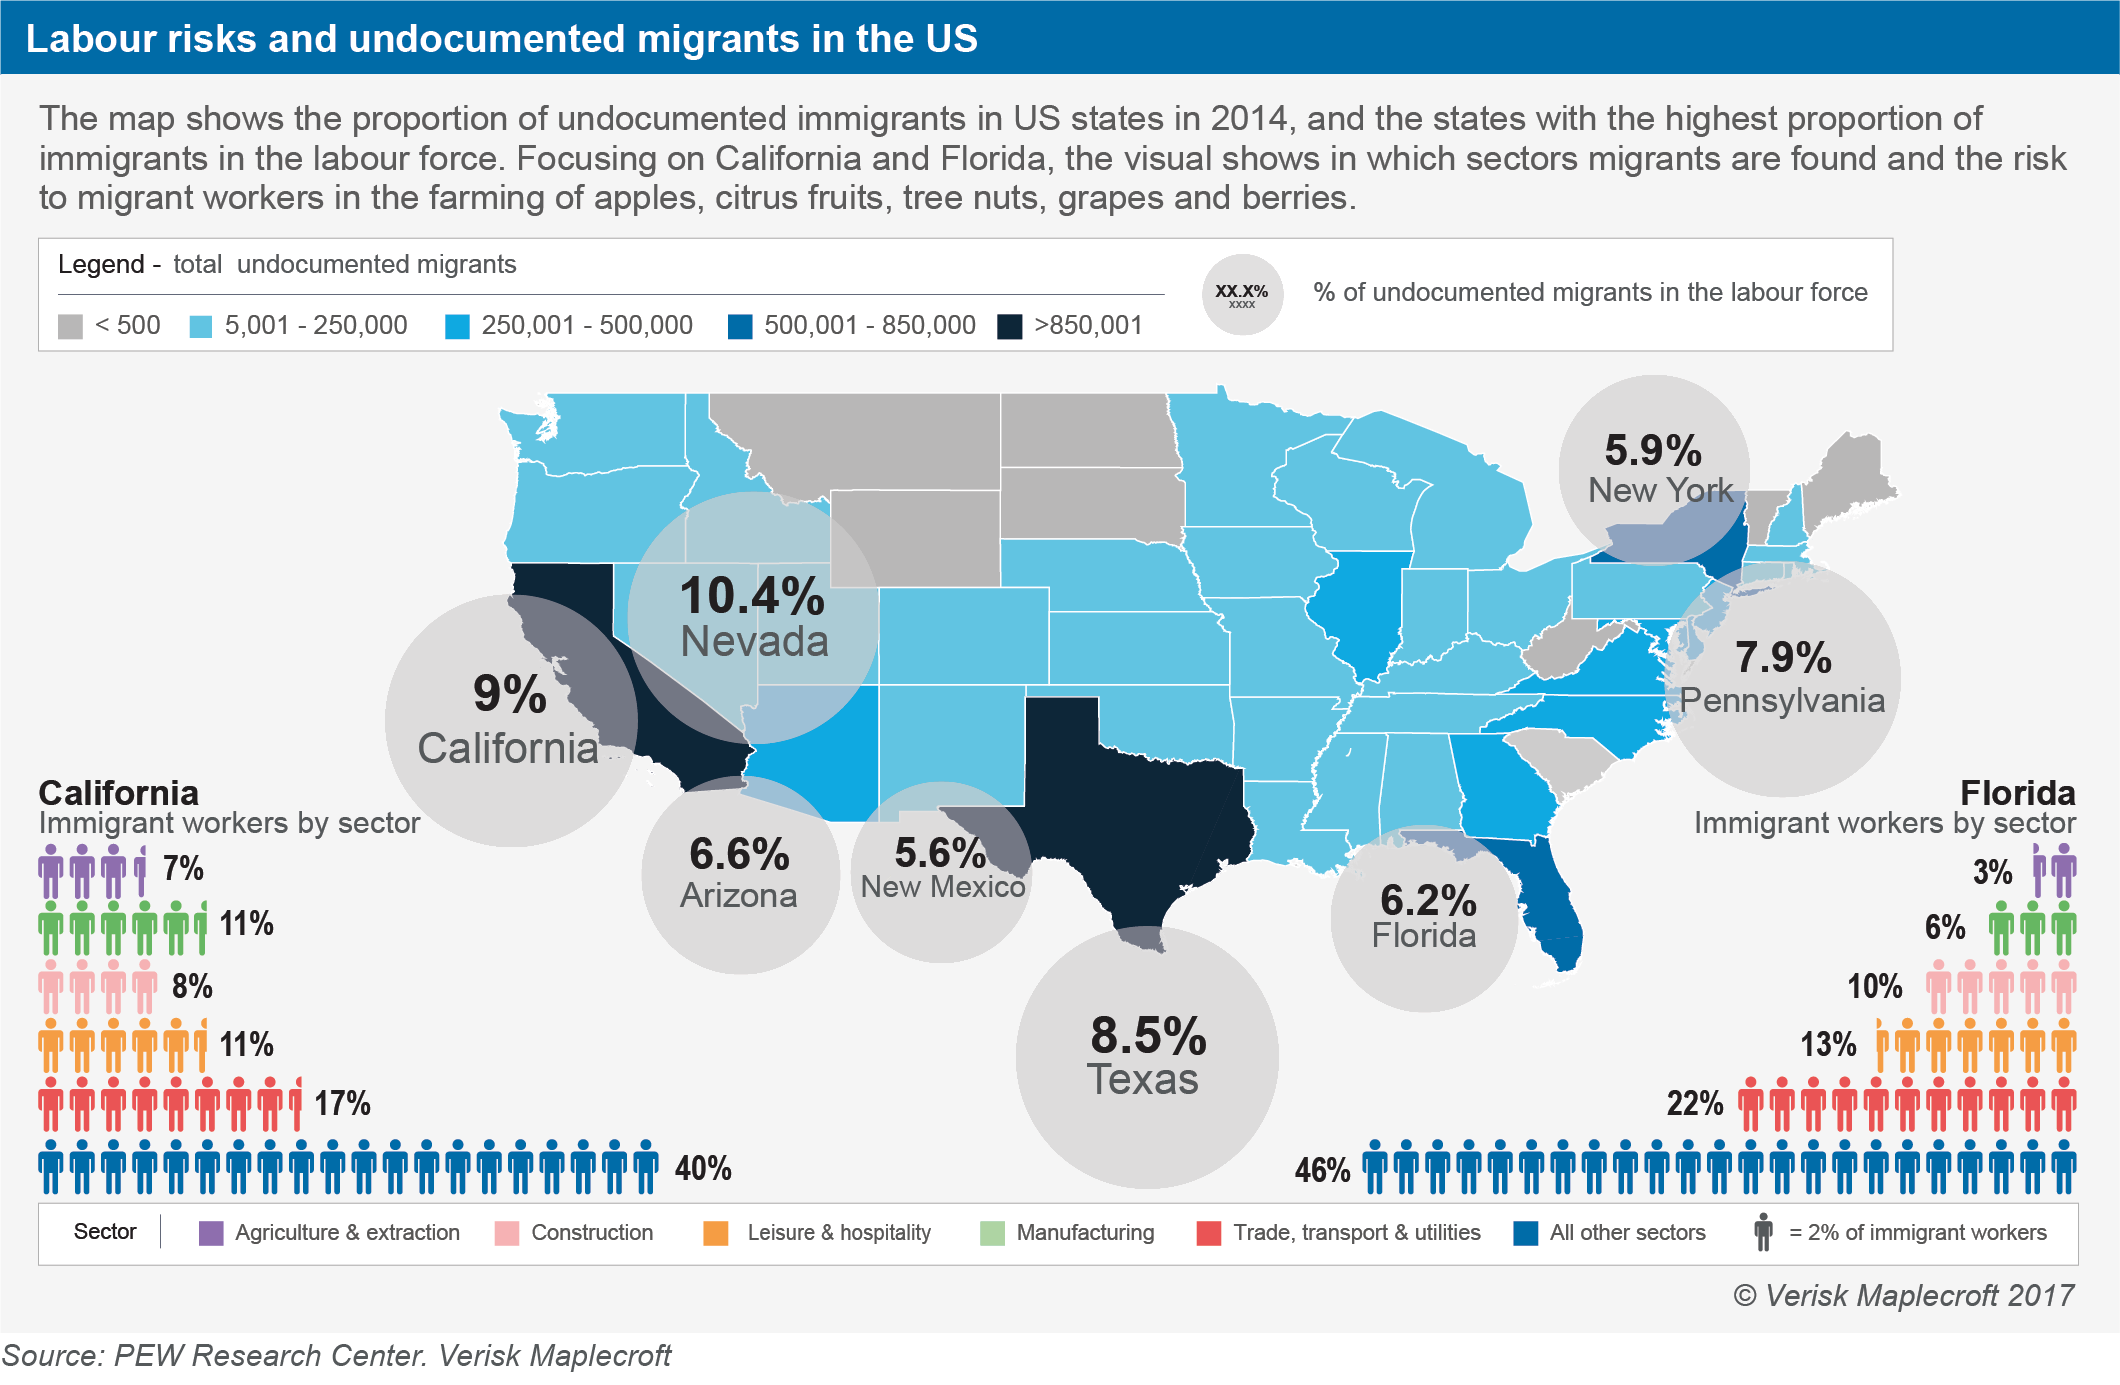 Labour risks and undocumented migrants in the US_US migrant clampdown, land grabs and slavery blind spots among top human rights risks for business